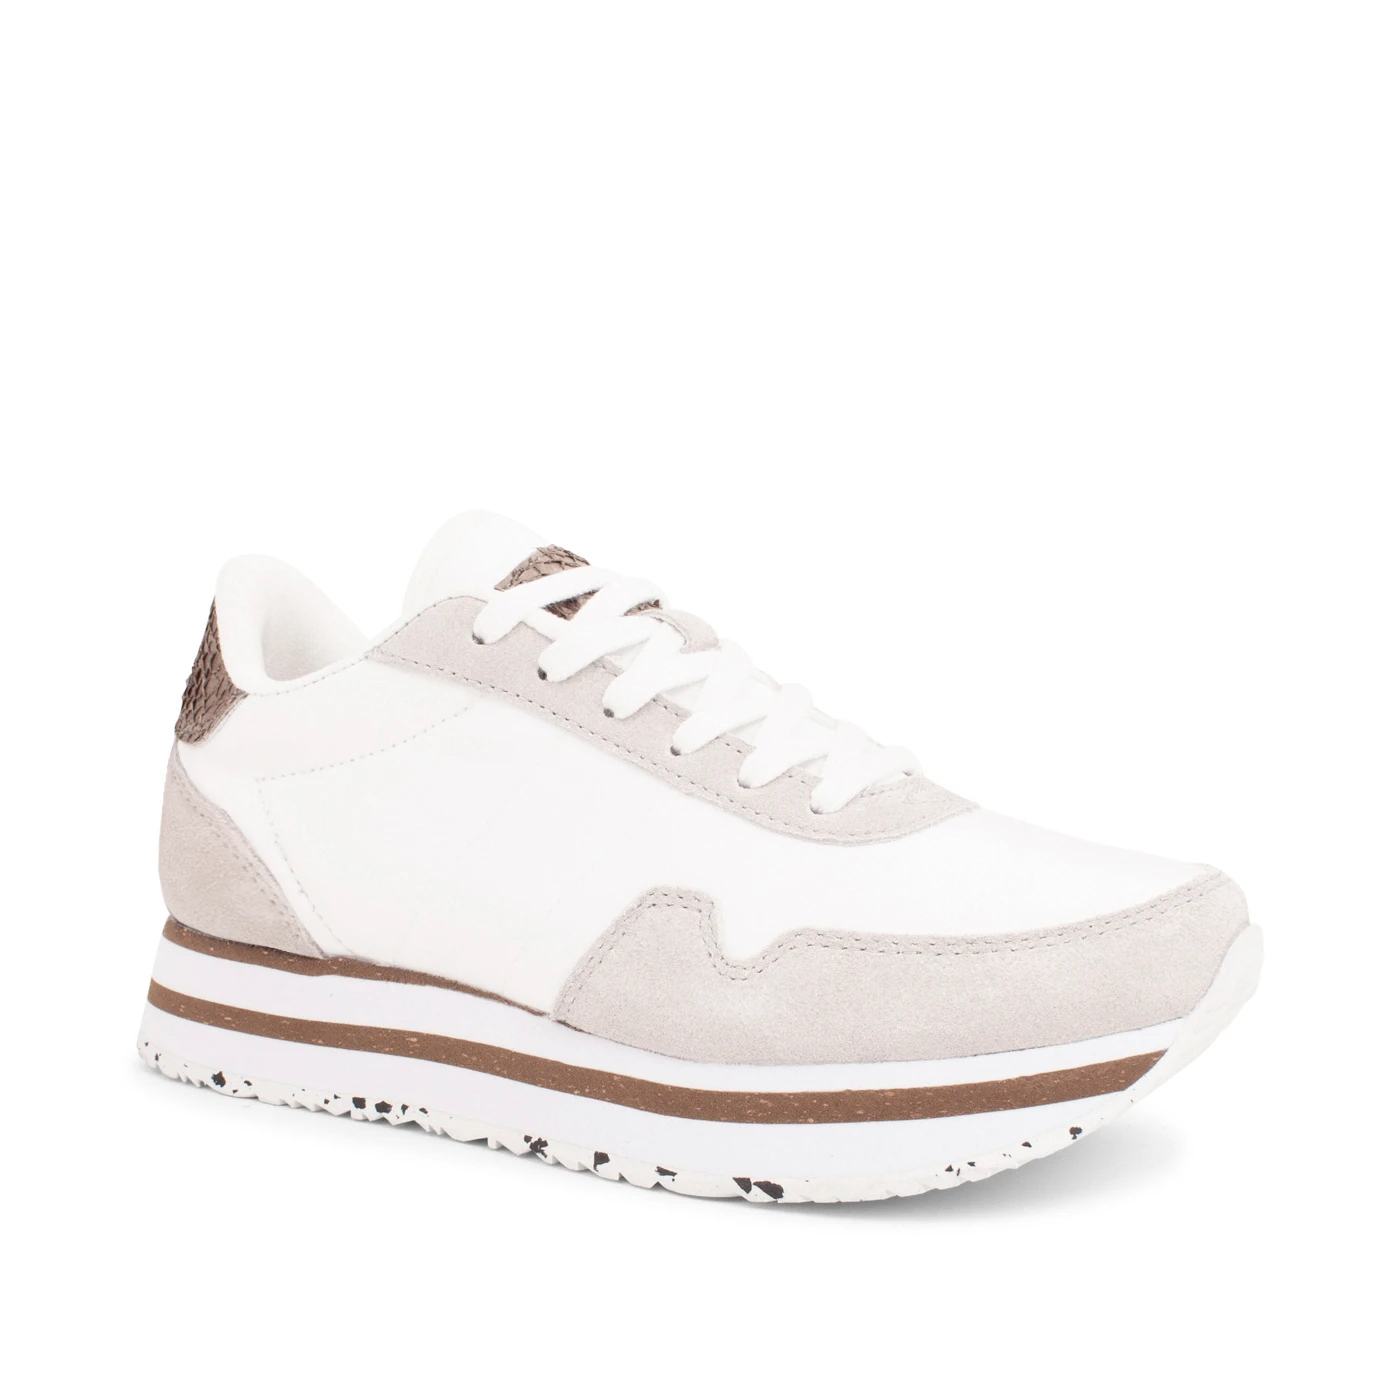 Woden Nora III Plateau sneakers, bright white, 37